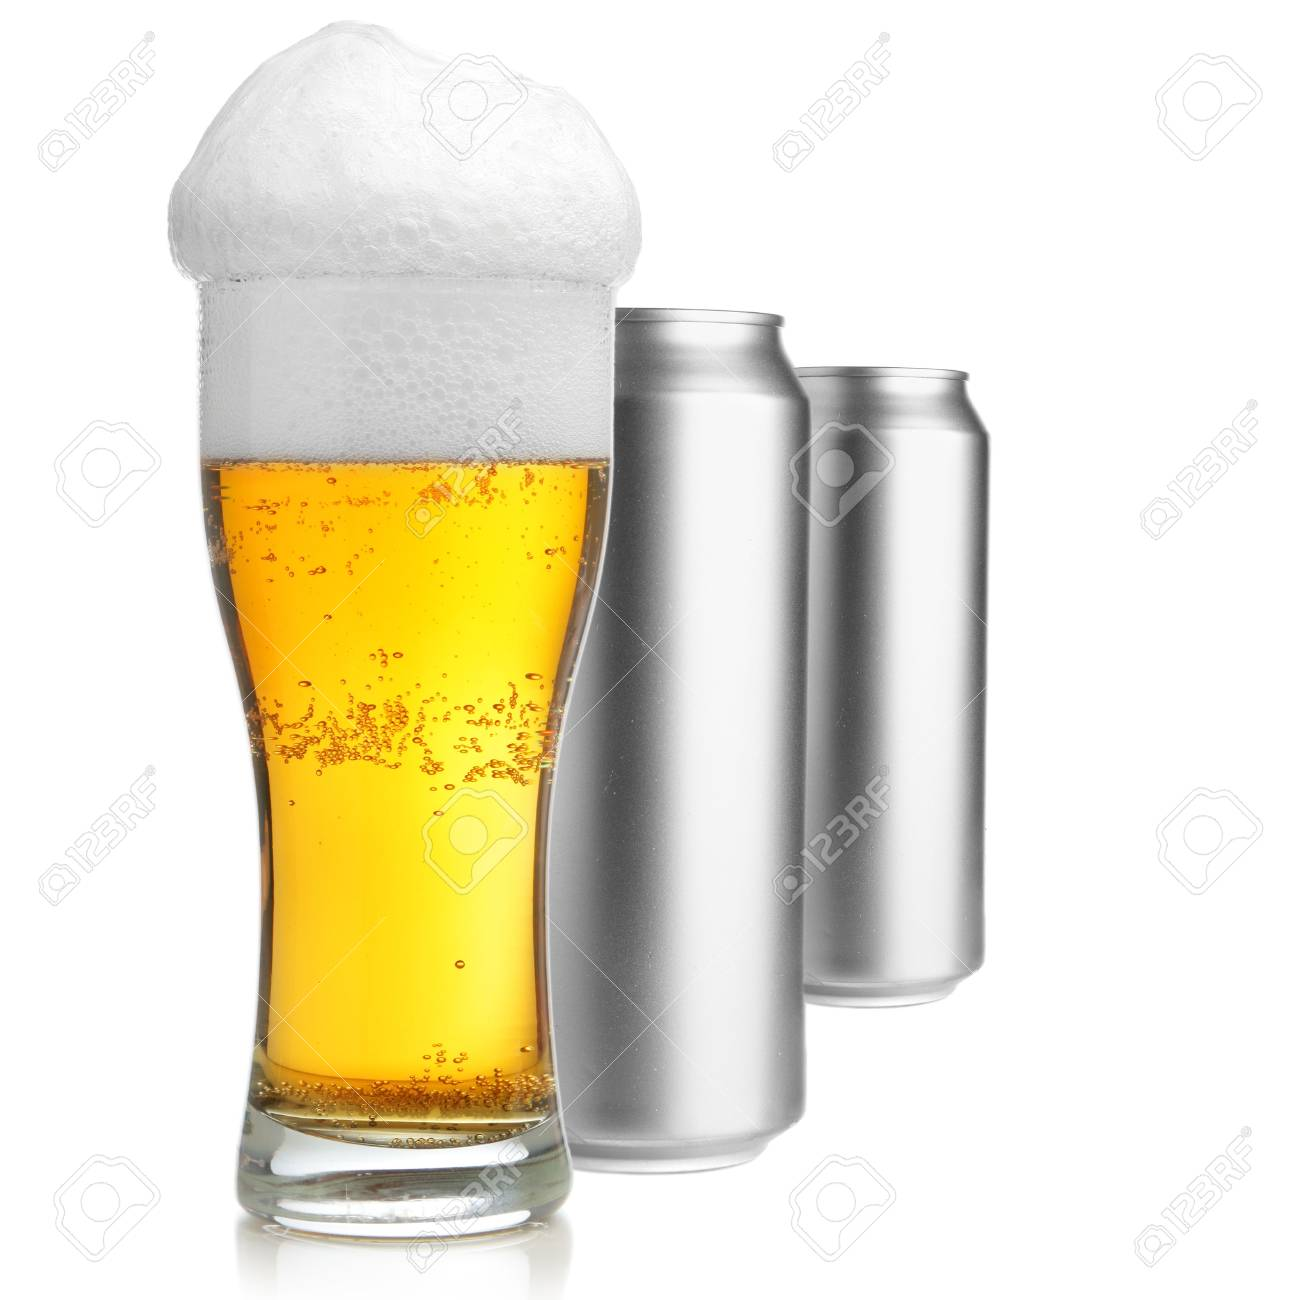 Beer glass and two cans isolated over white background Stock Photo - 3682302